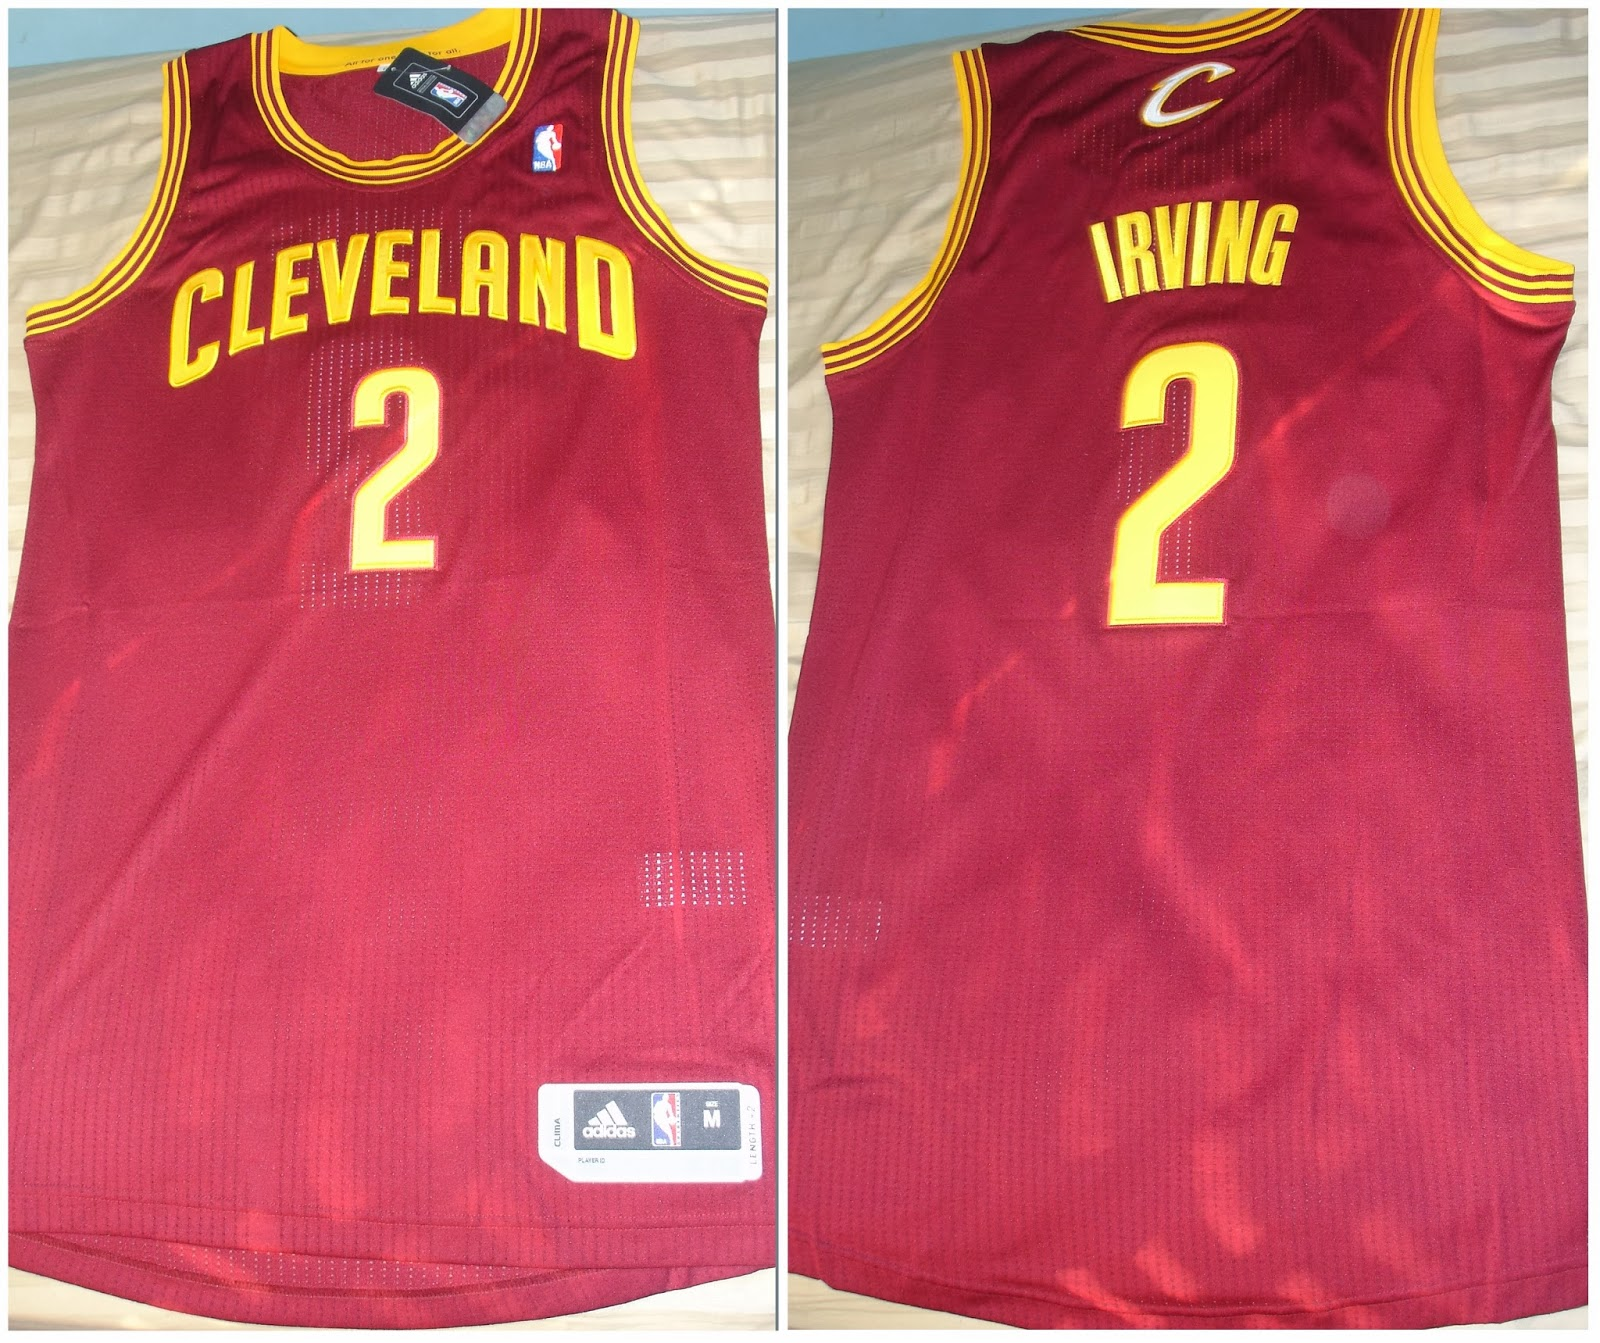 be0c8d88e9445 Acquisition: Kyrie Irving Cleveland Cavaliers Authentic Road Jersey